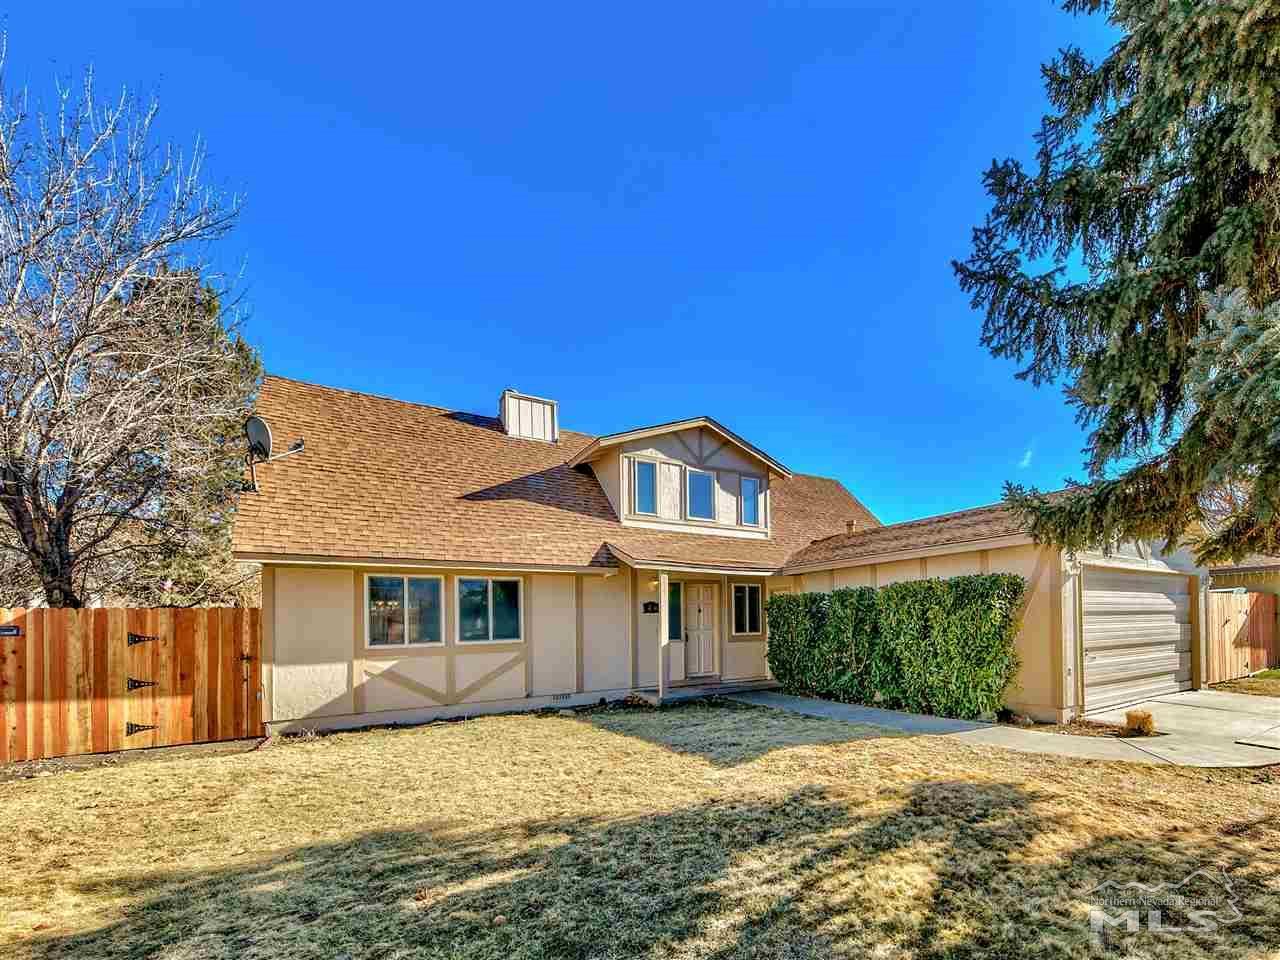 Image for 7460 Berryhill Dr., Reno, NV 89511